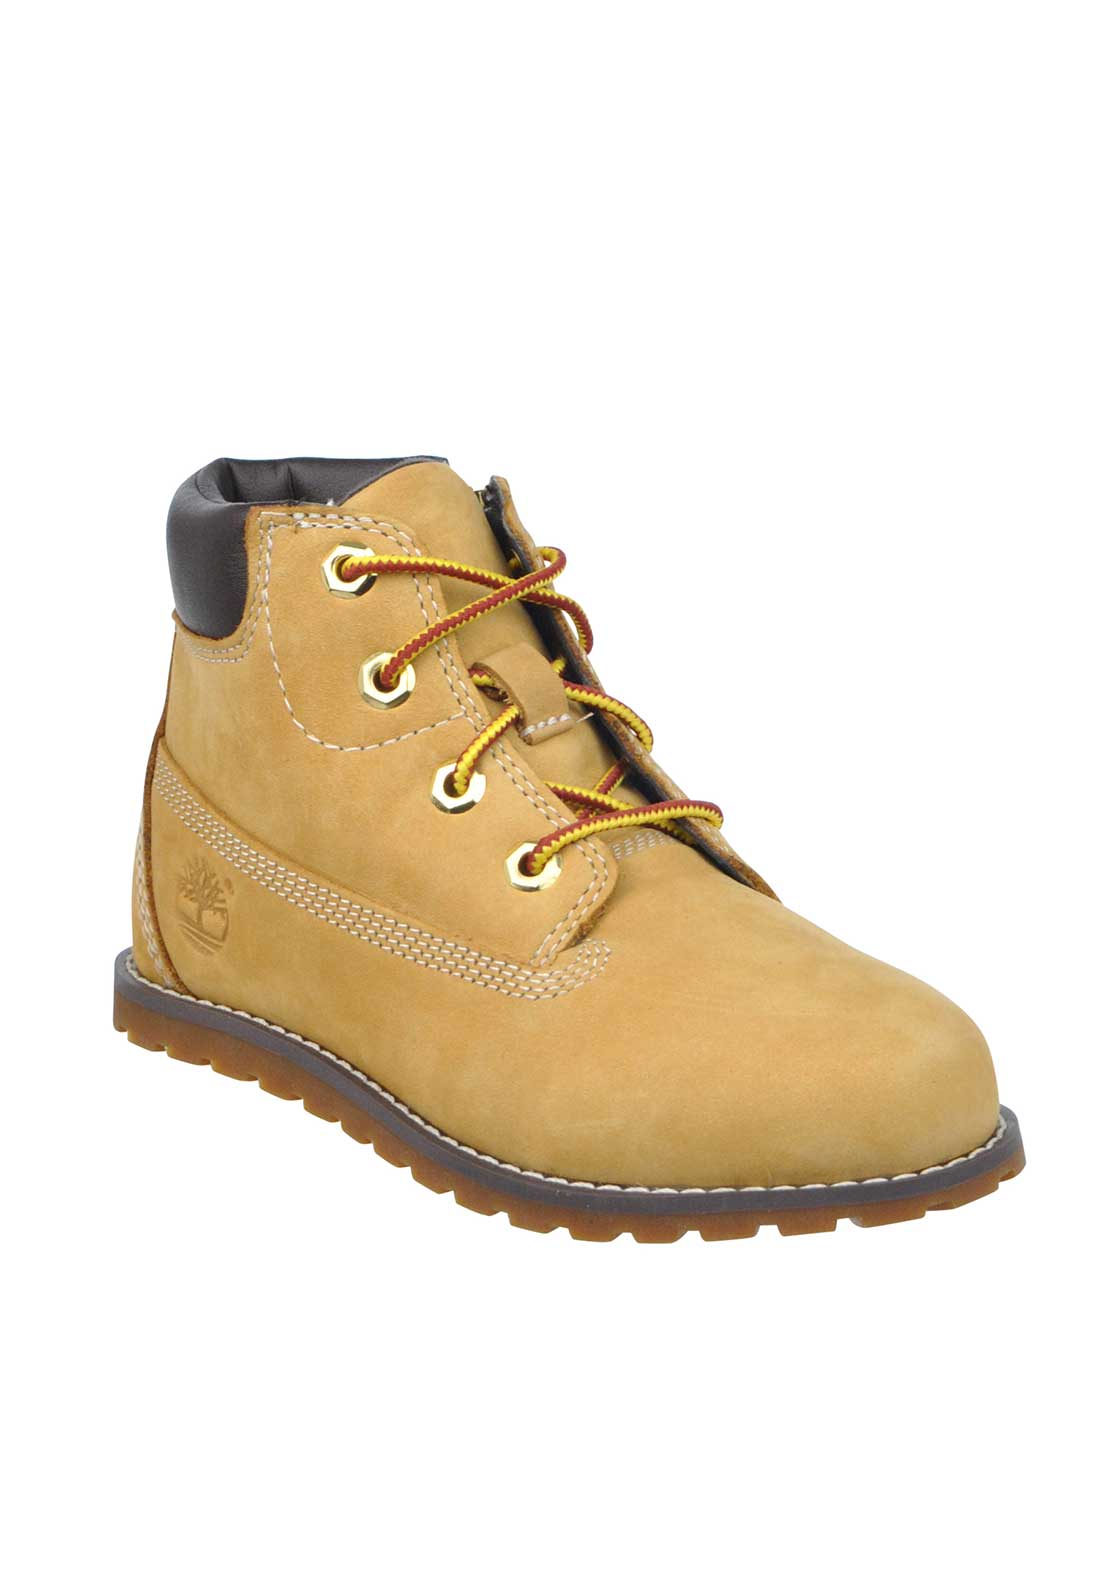 Timberland Boys Suede Splash Blaster Laced Boots, Wheat